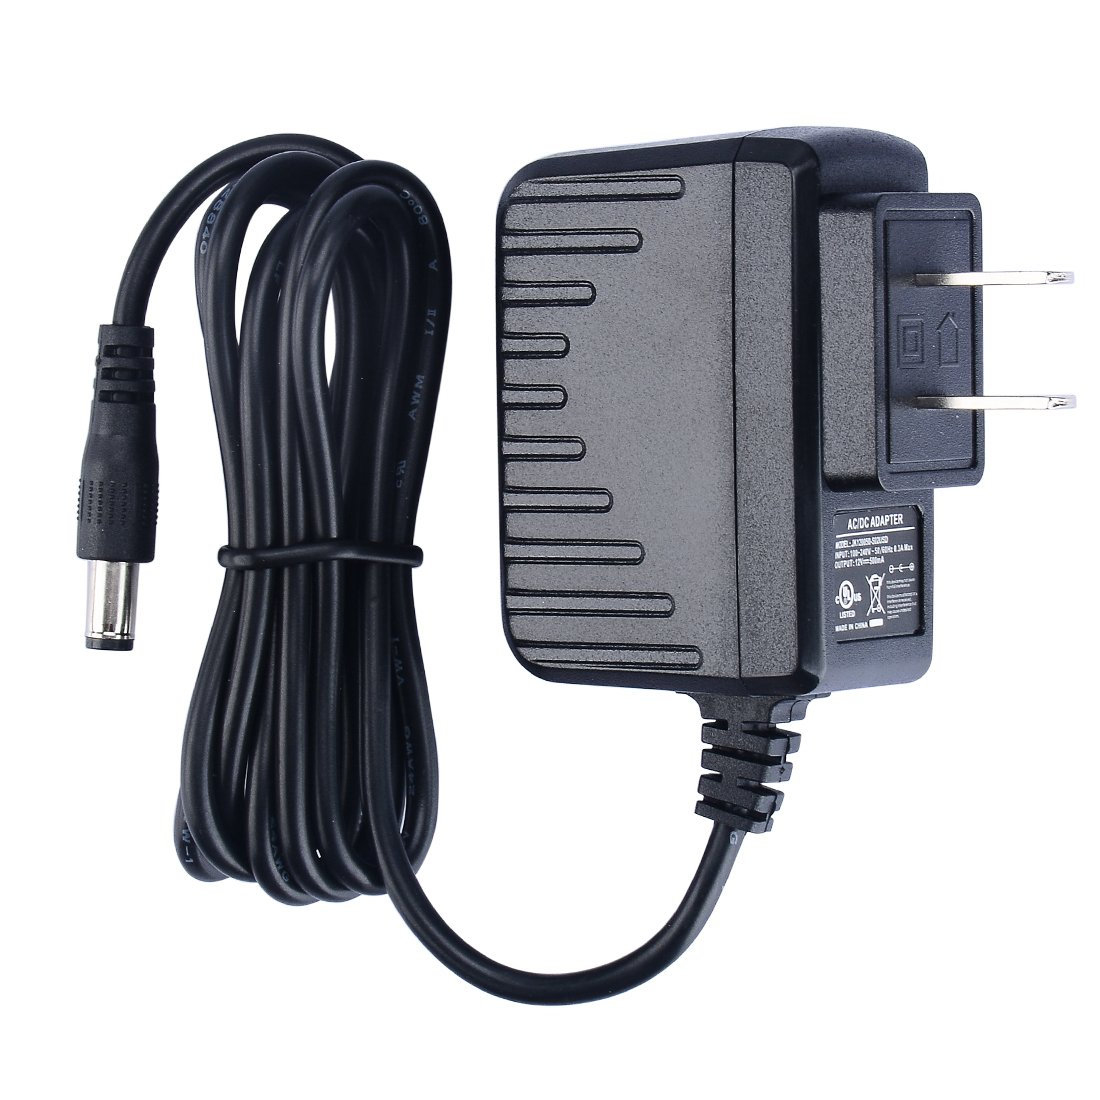 Pryeu 6w Power Supply 120v Ac To 12v Dc 500ma Charger Transformer Ps2 Schematic Adapters Ul Listed With Jack 55mm X 21mm